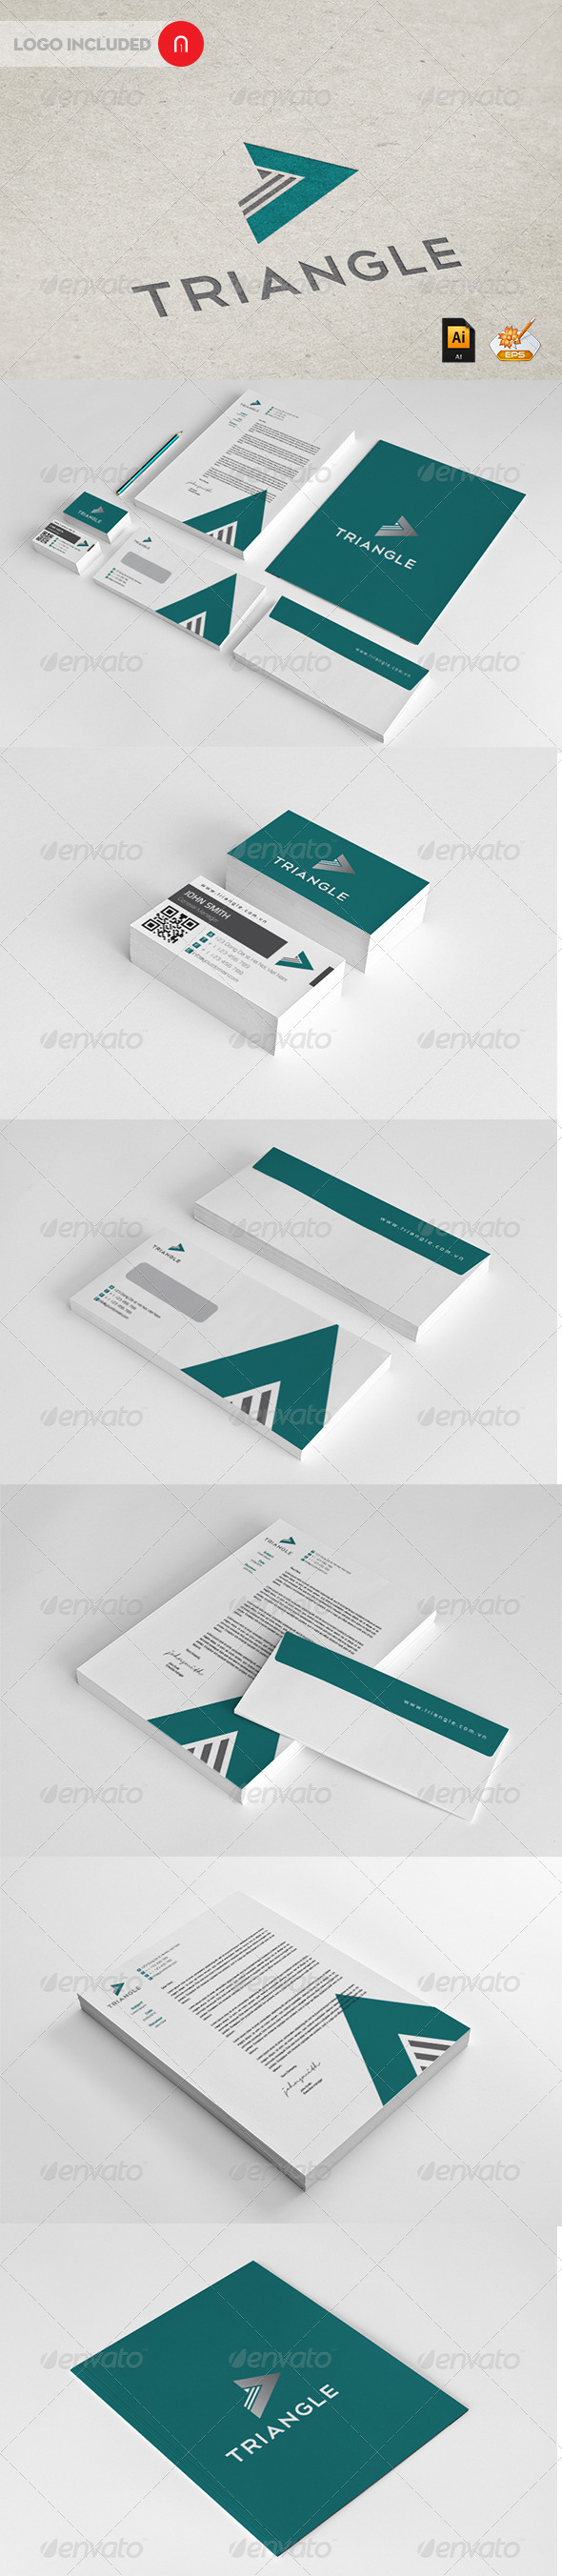 Triangle Corporate Identity - Stationery Print Templates